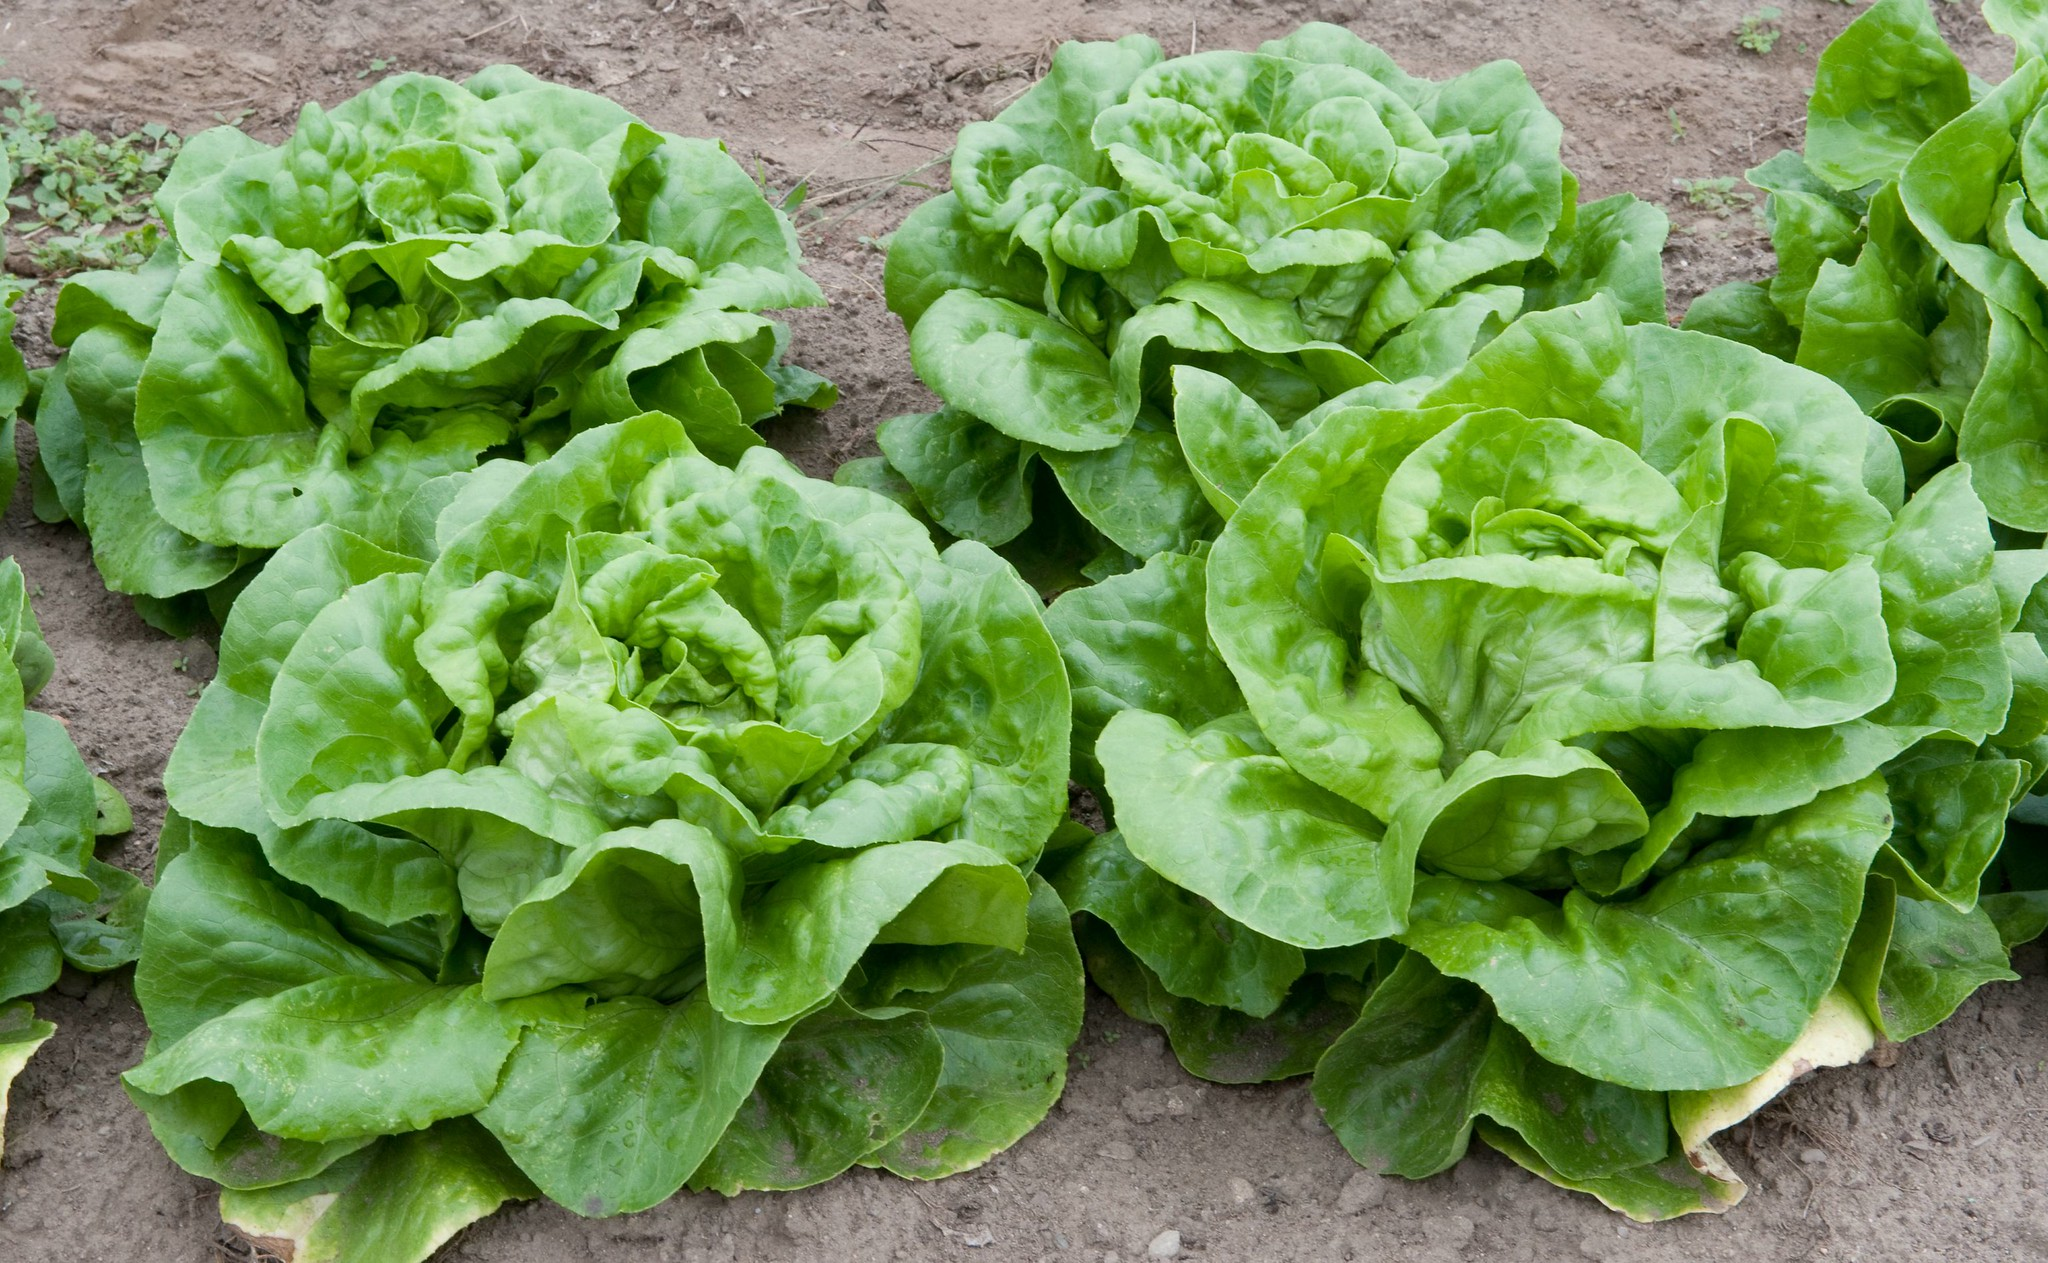 Plant veggies at the right time to avoid disappointment